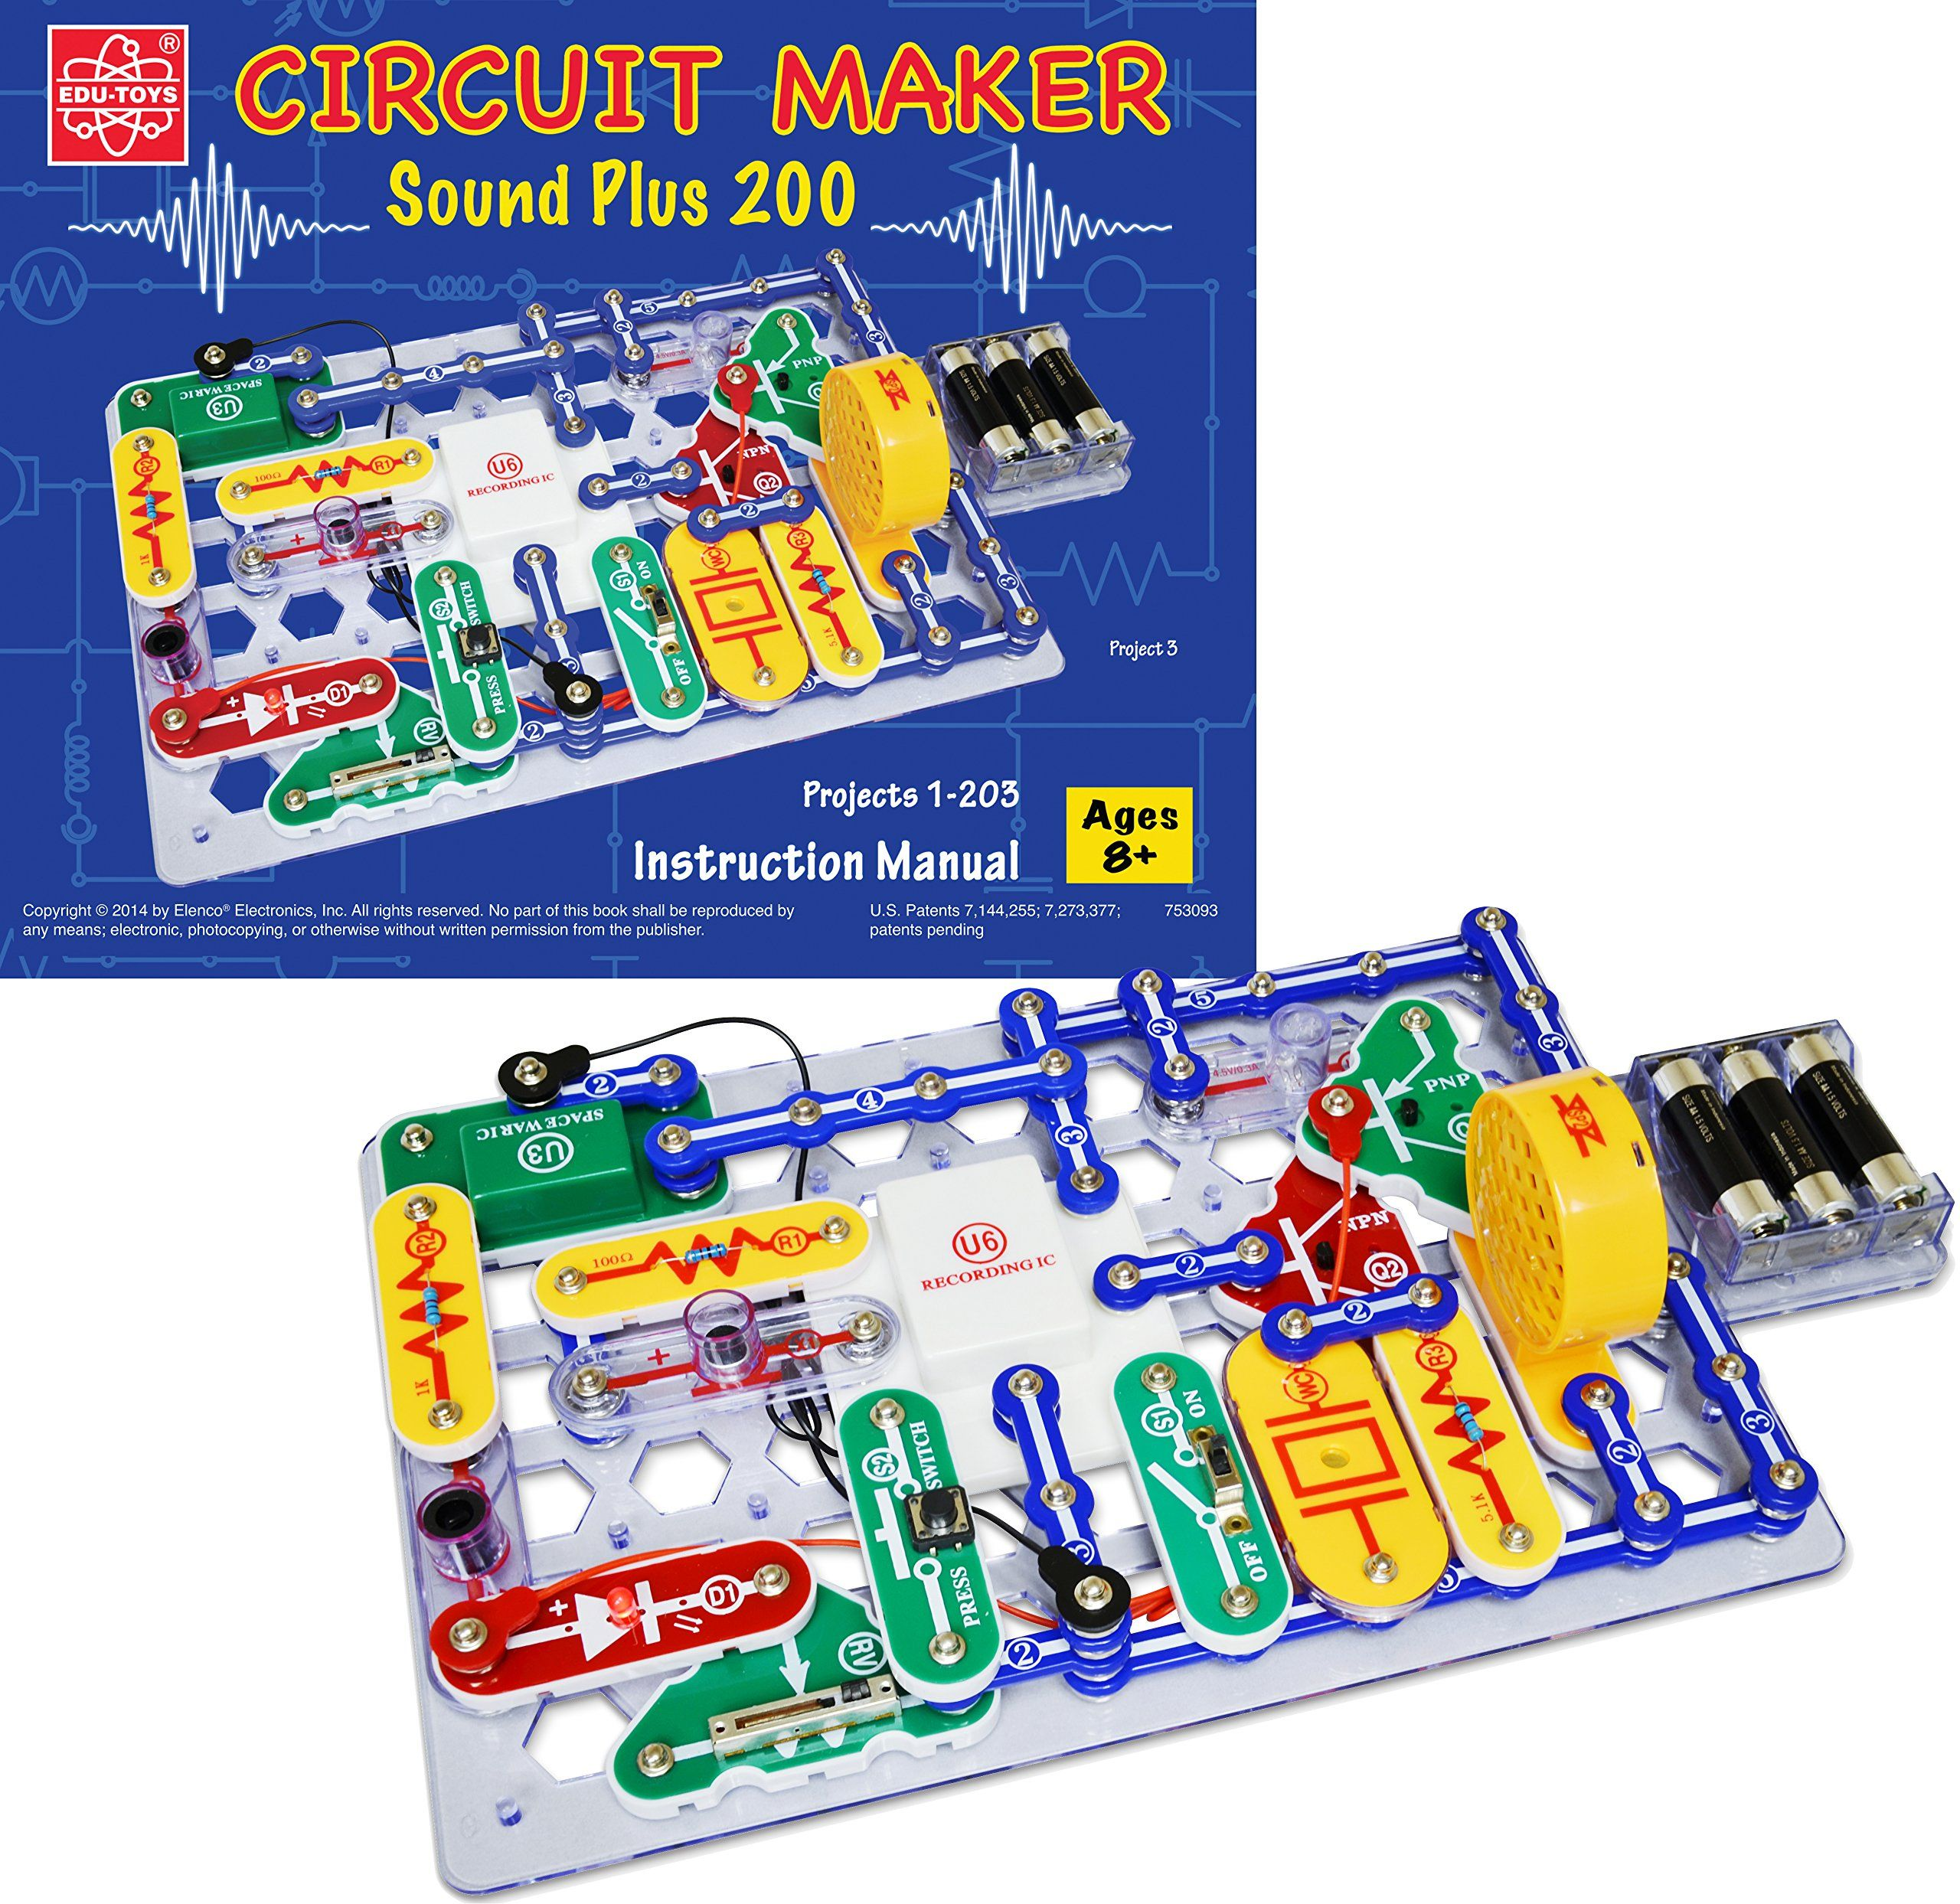 Amazoncom Elenco Circuit Maker 200 Sound Plus Electronics Discovery